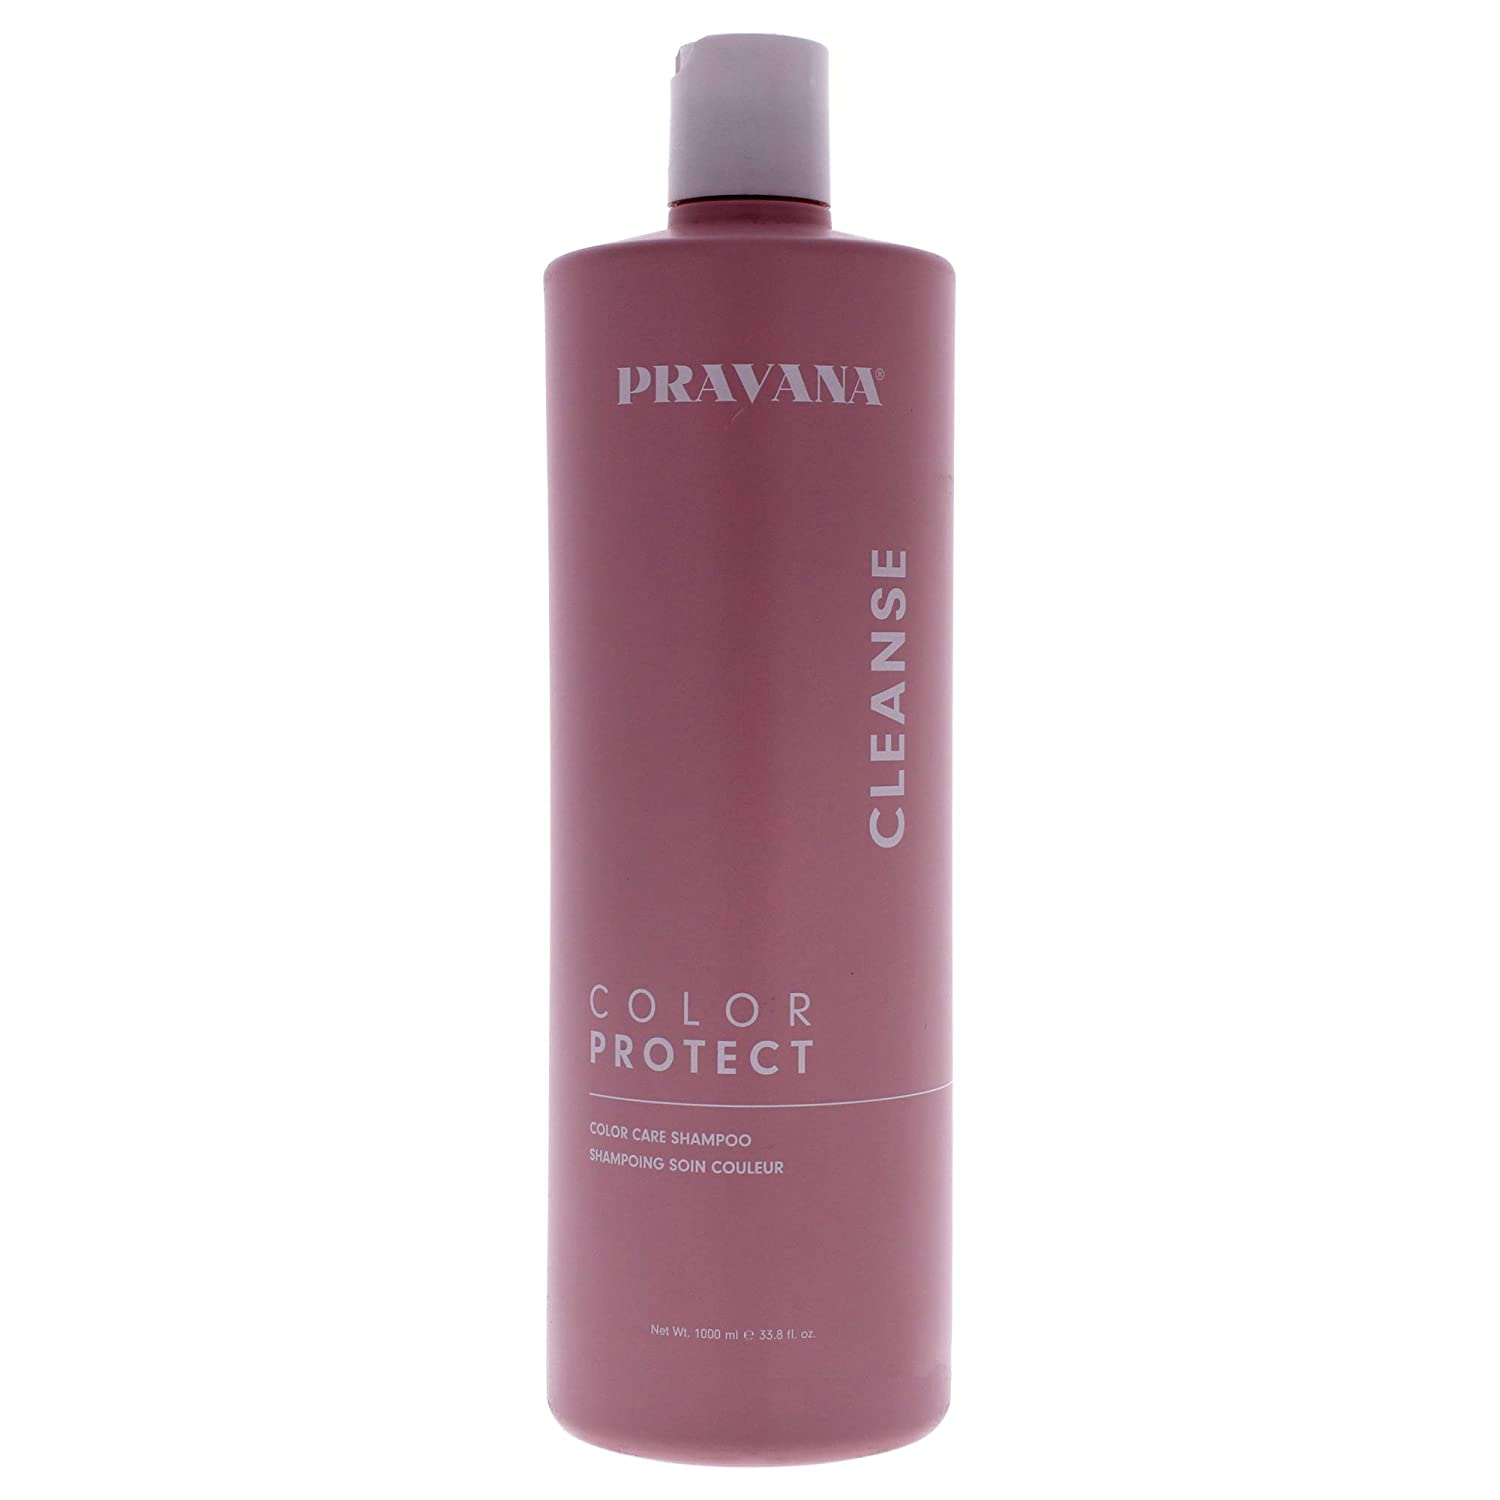 Pravana Color Protect Shampoo, 33.8 Oz